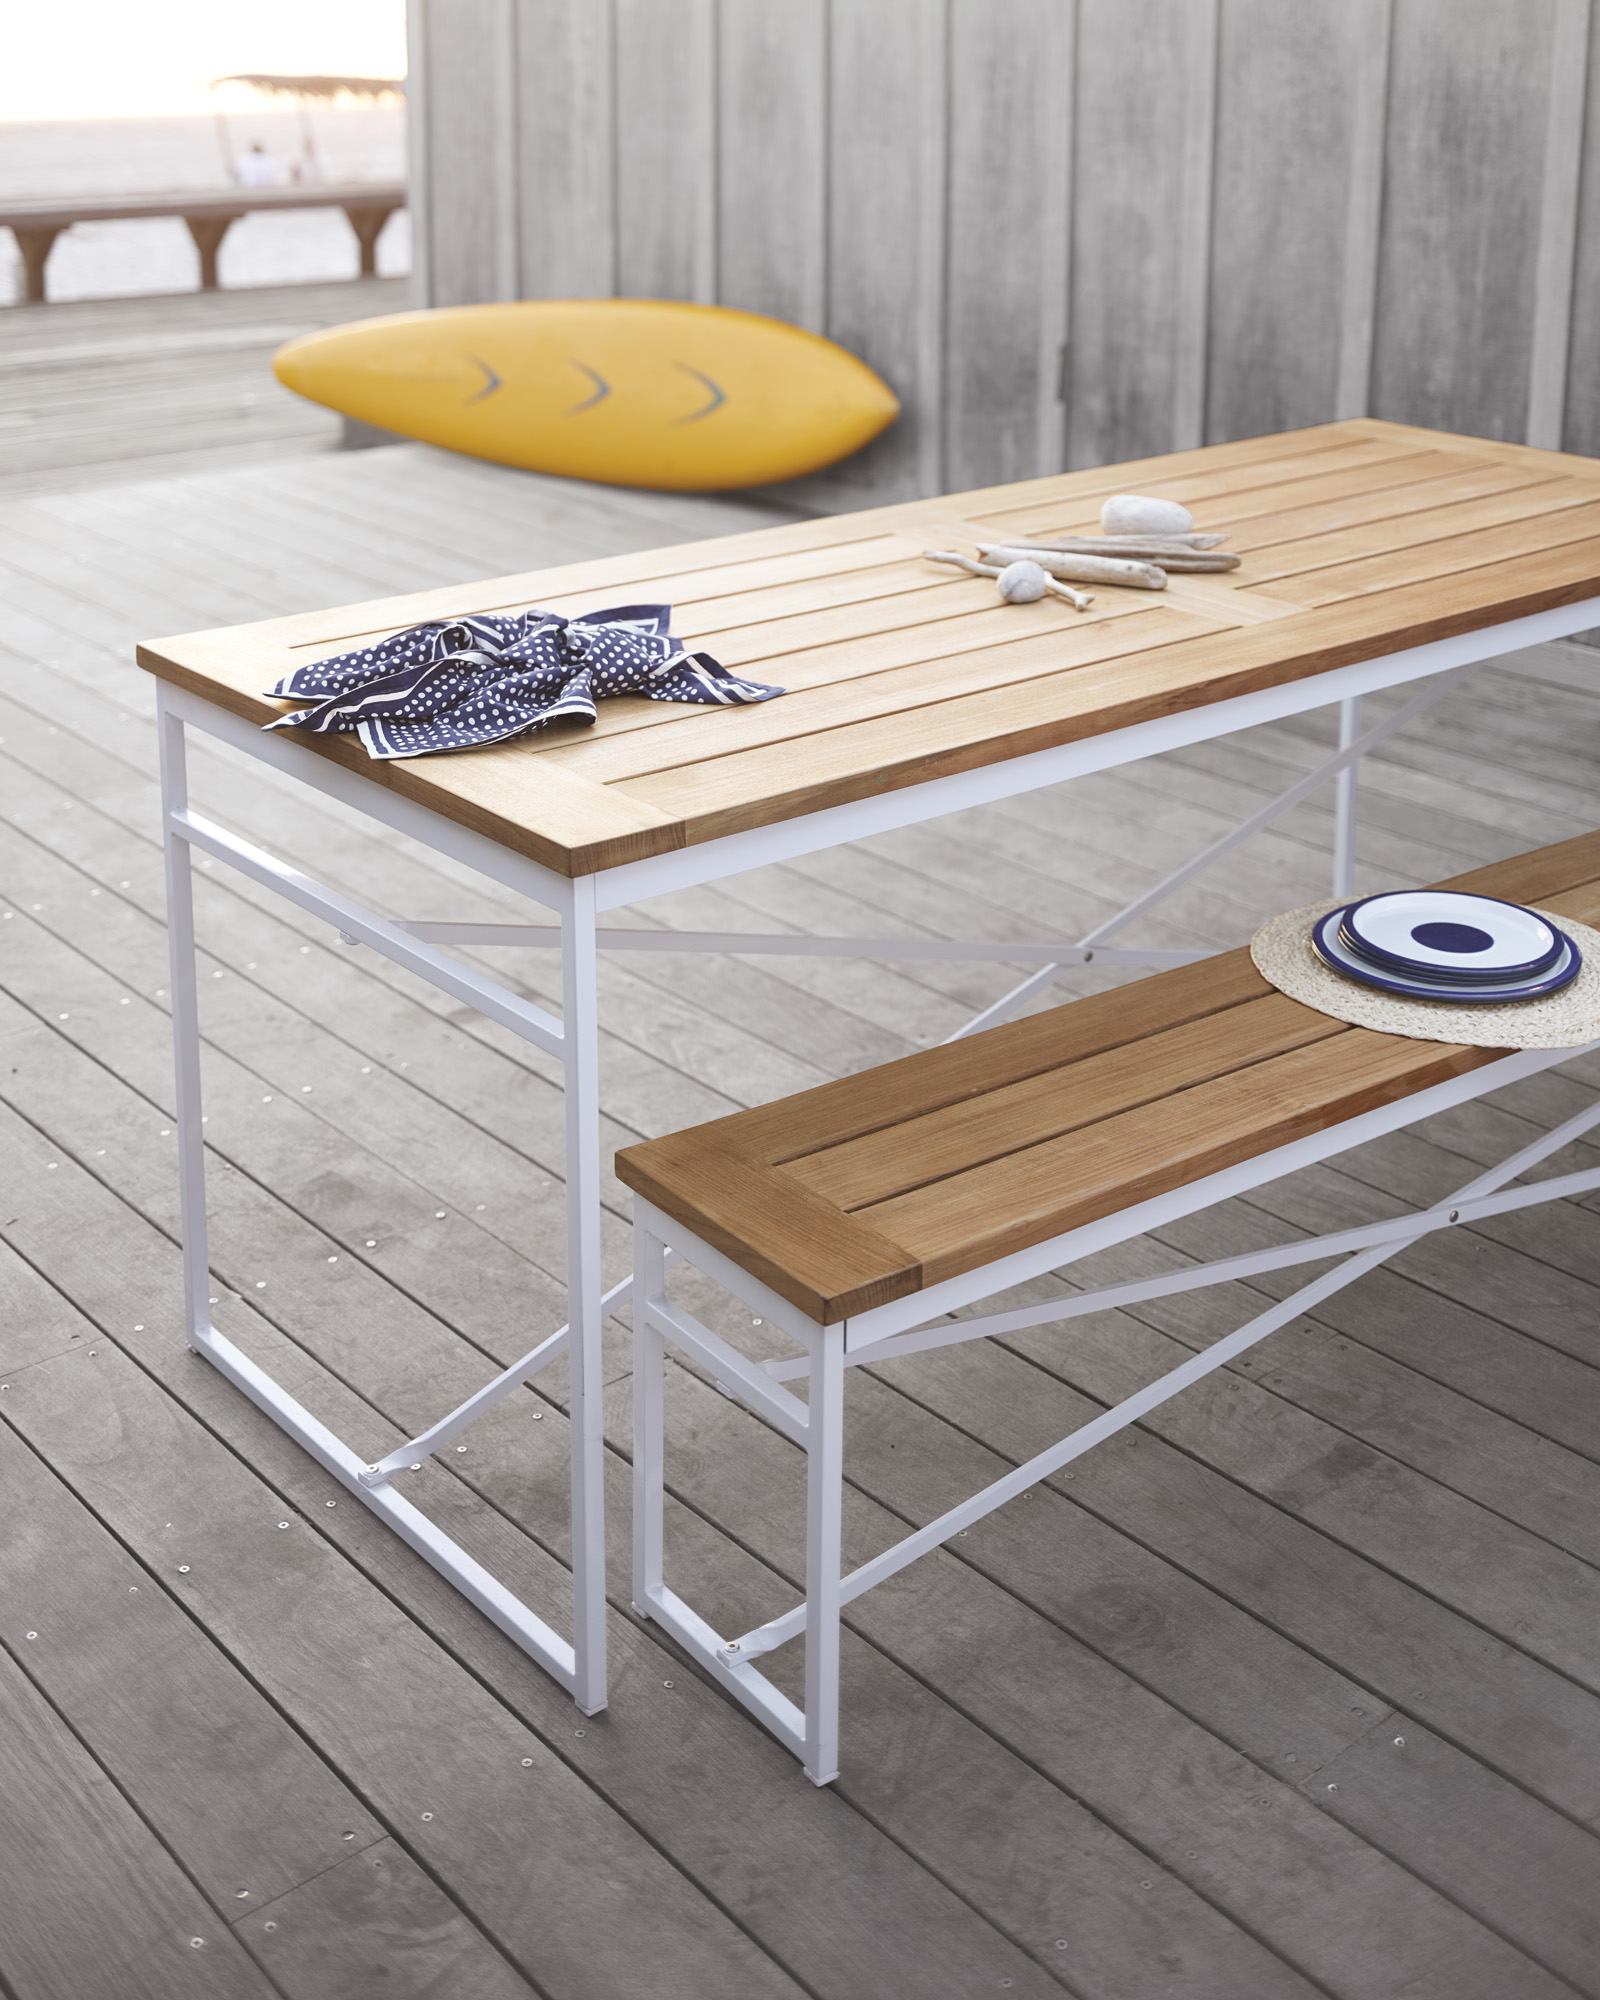 Serena & Lily Teak Garden Bench and Table/$895-$1250